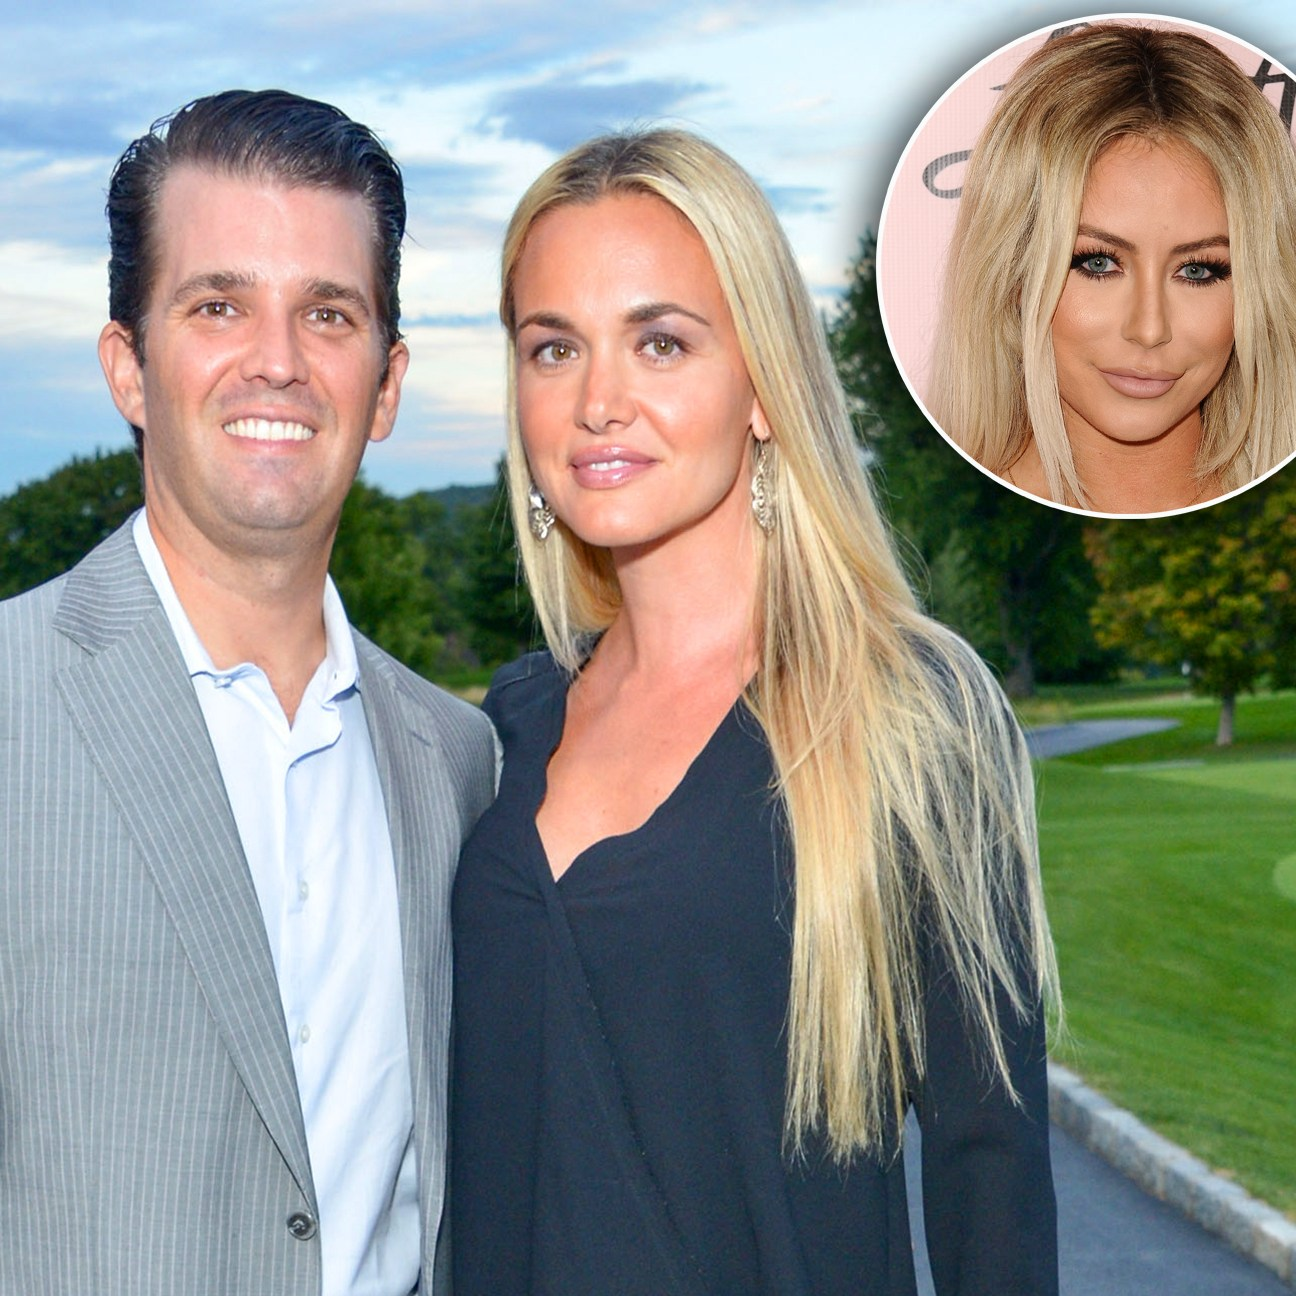 Donald Trump Jr., Vanessa Trump and Aubrey O'Day affair divorce